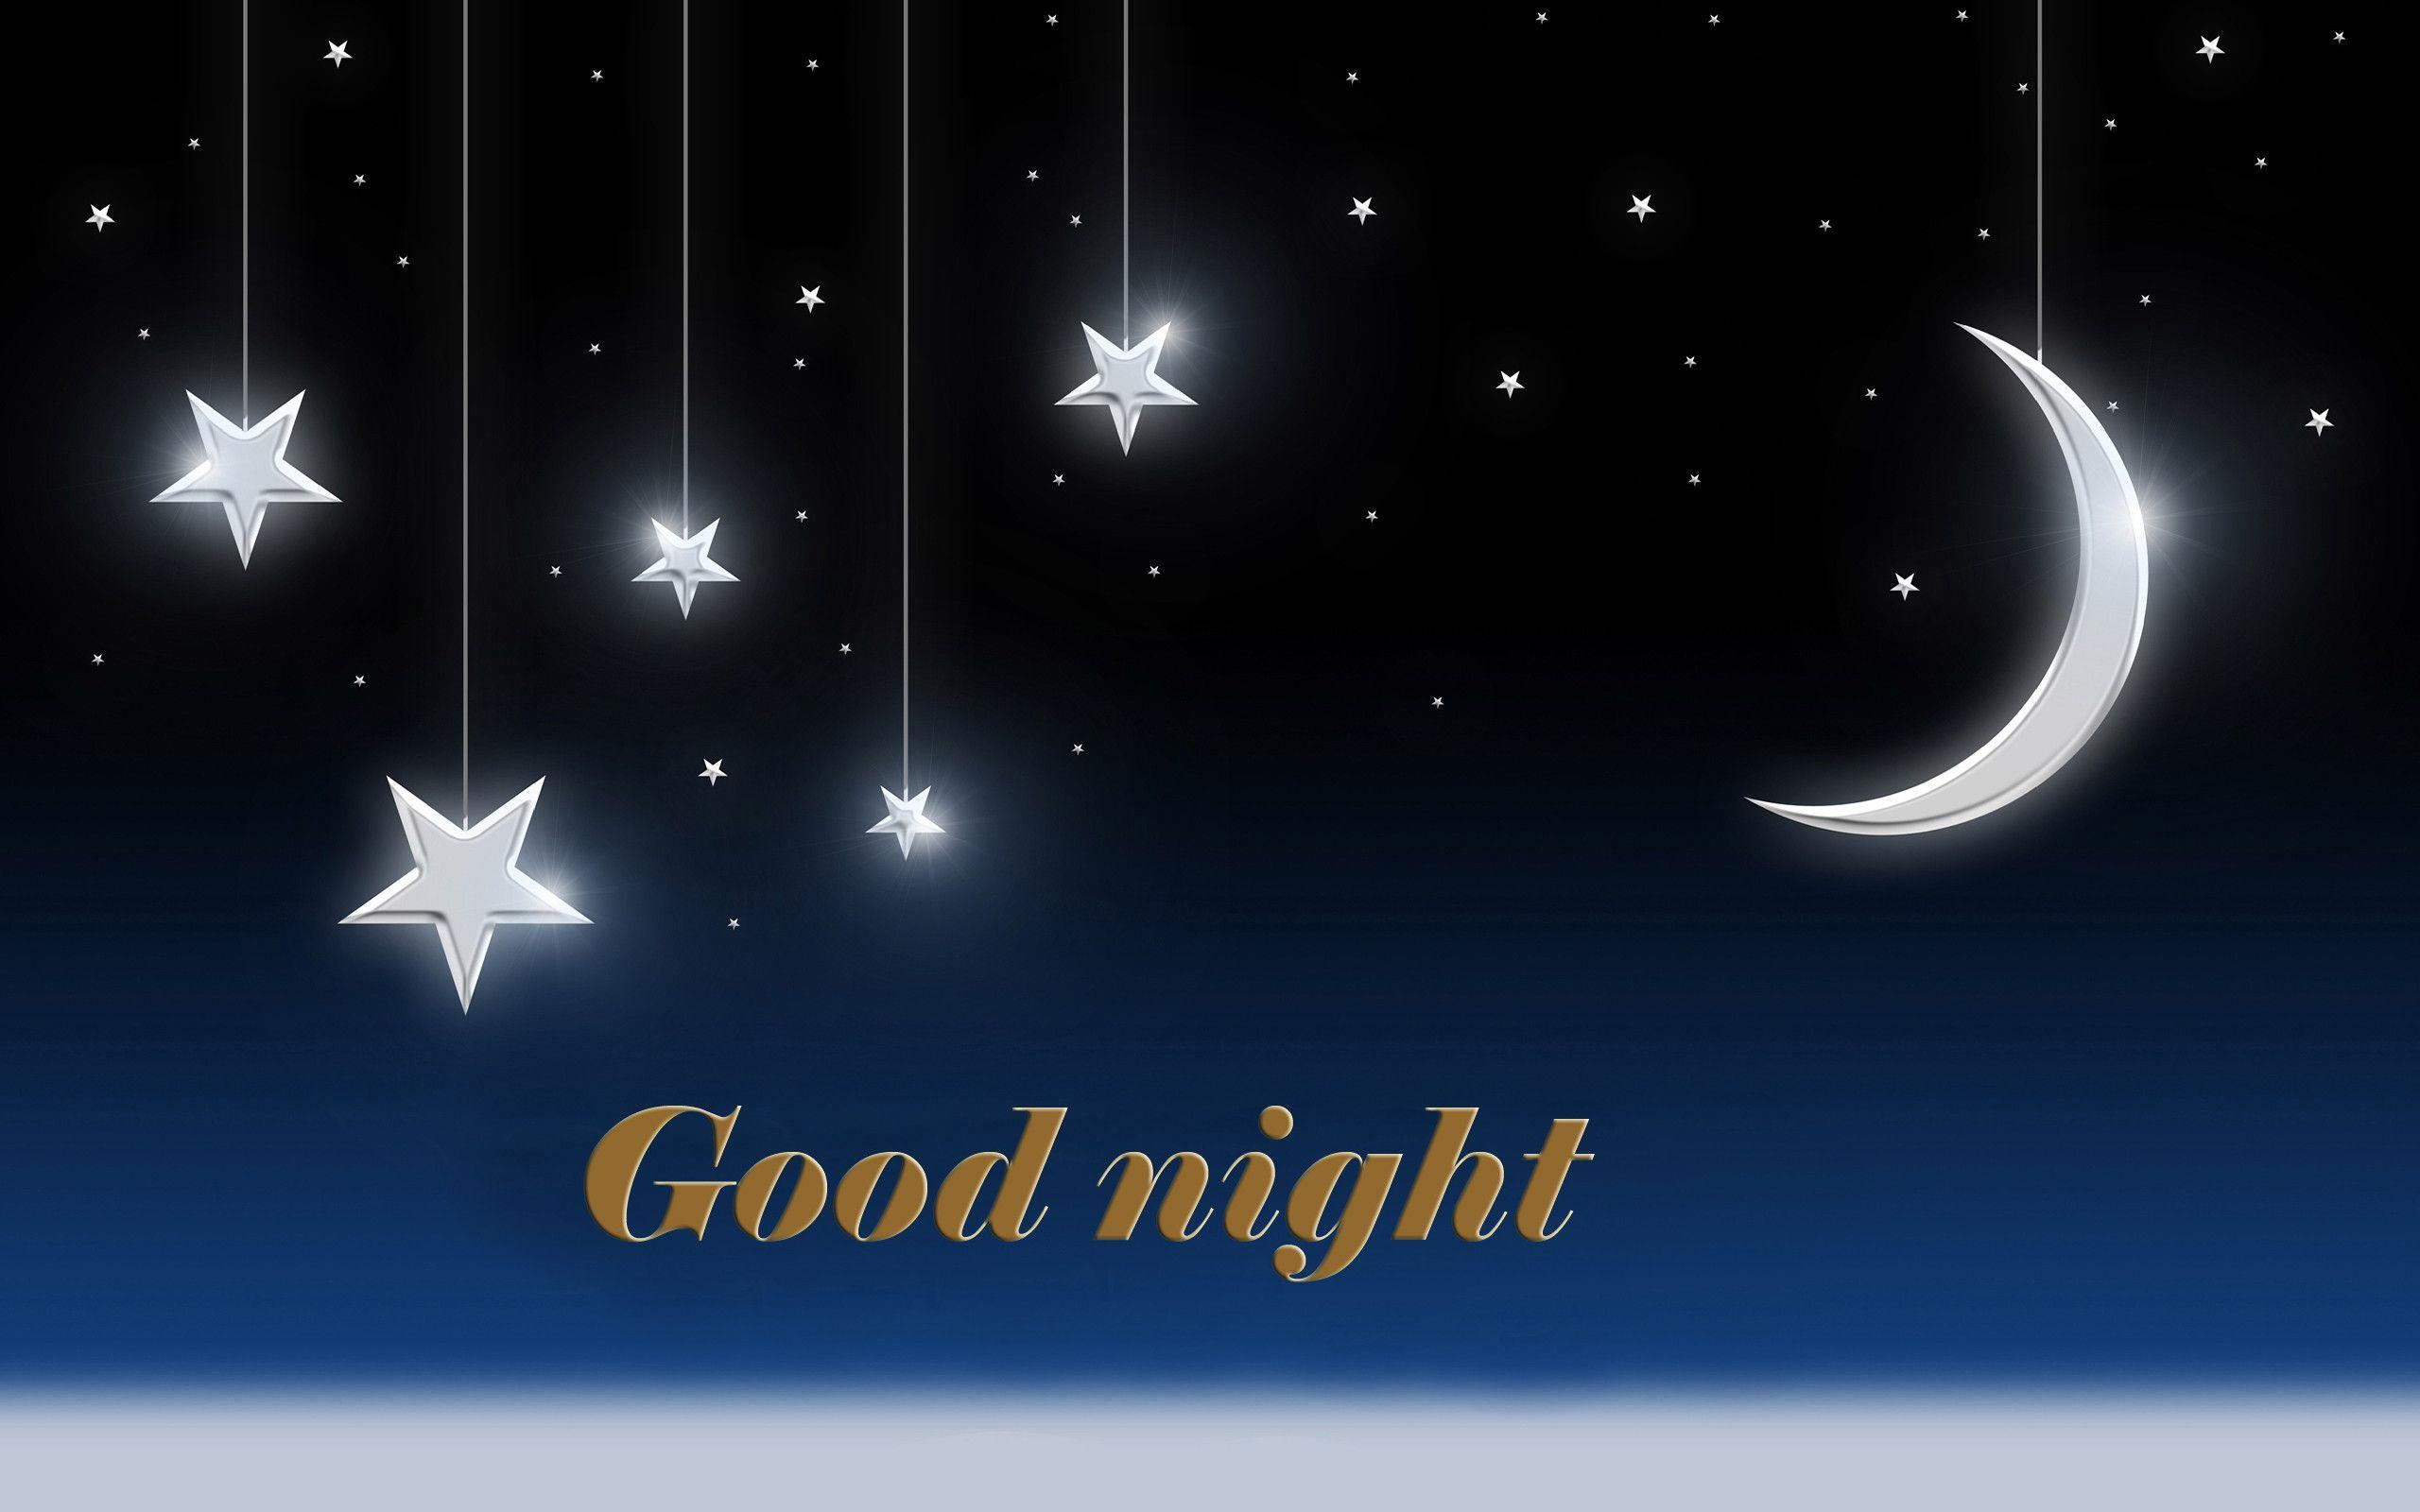 Good nite wallpapers wallpaper cave free good night wallpapers download wallpapers idol voltagebd Image collections